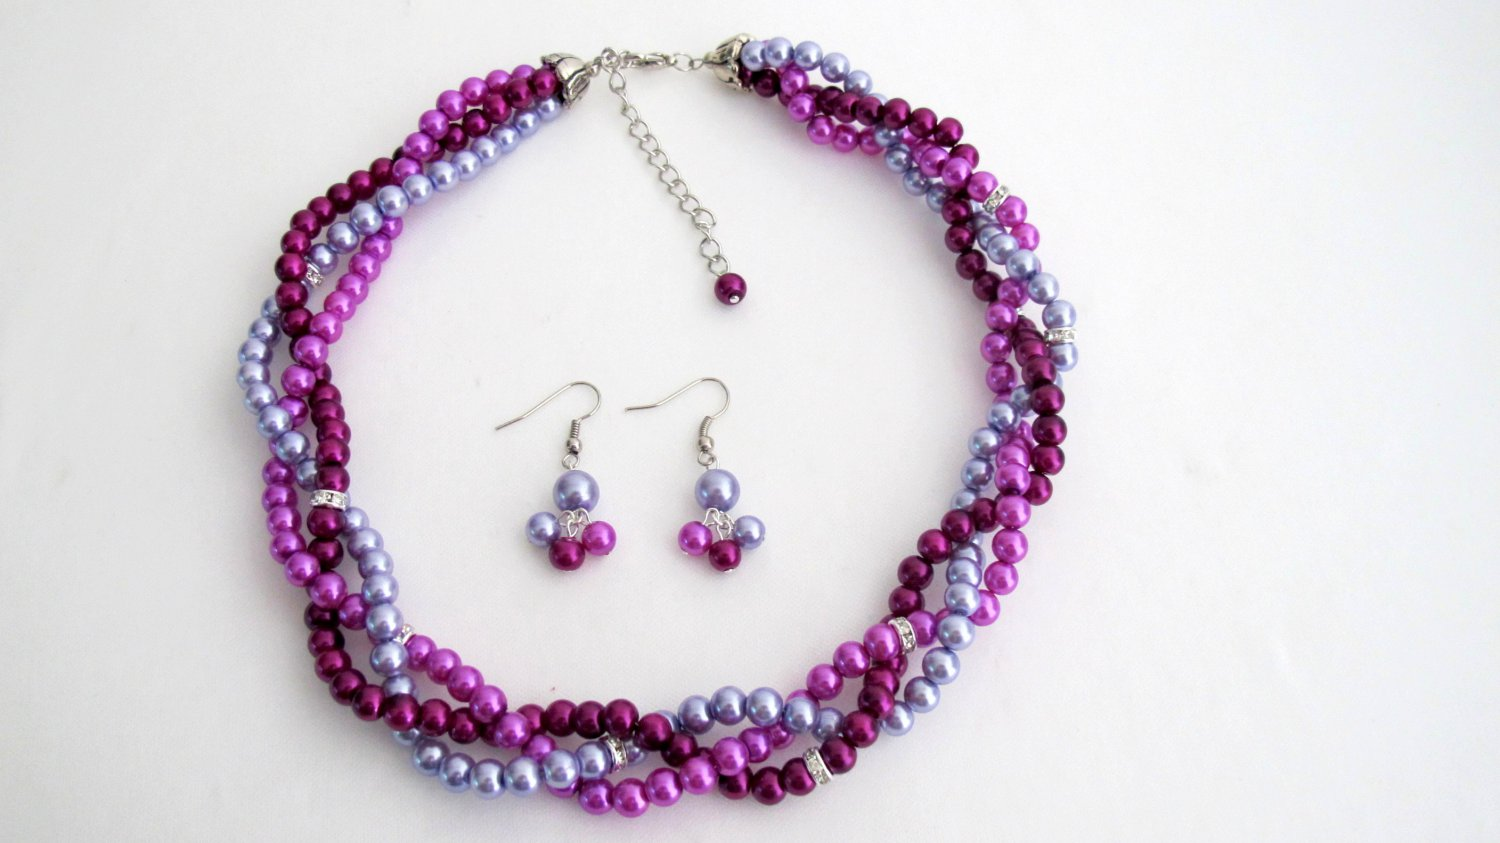 NS1315 Bridesmaid Twisted Necklace Dangling Earrings In Plum Purple And Lilac